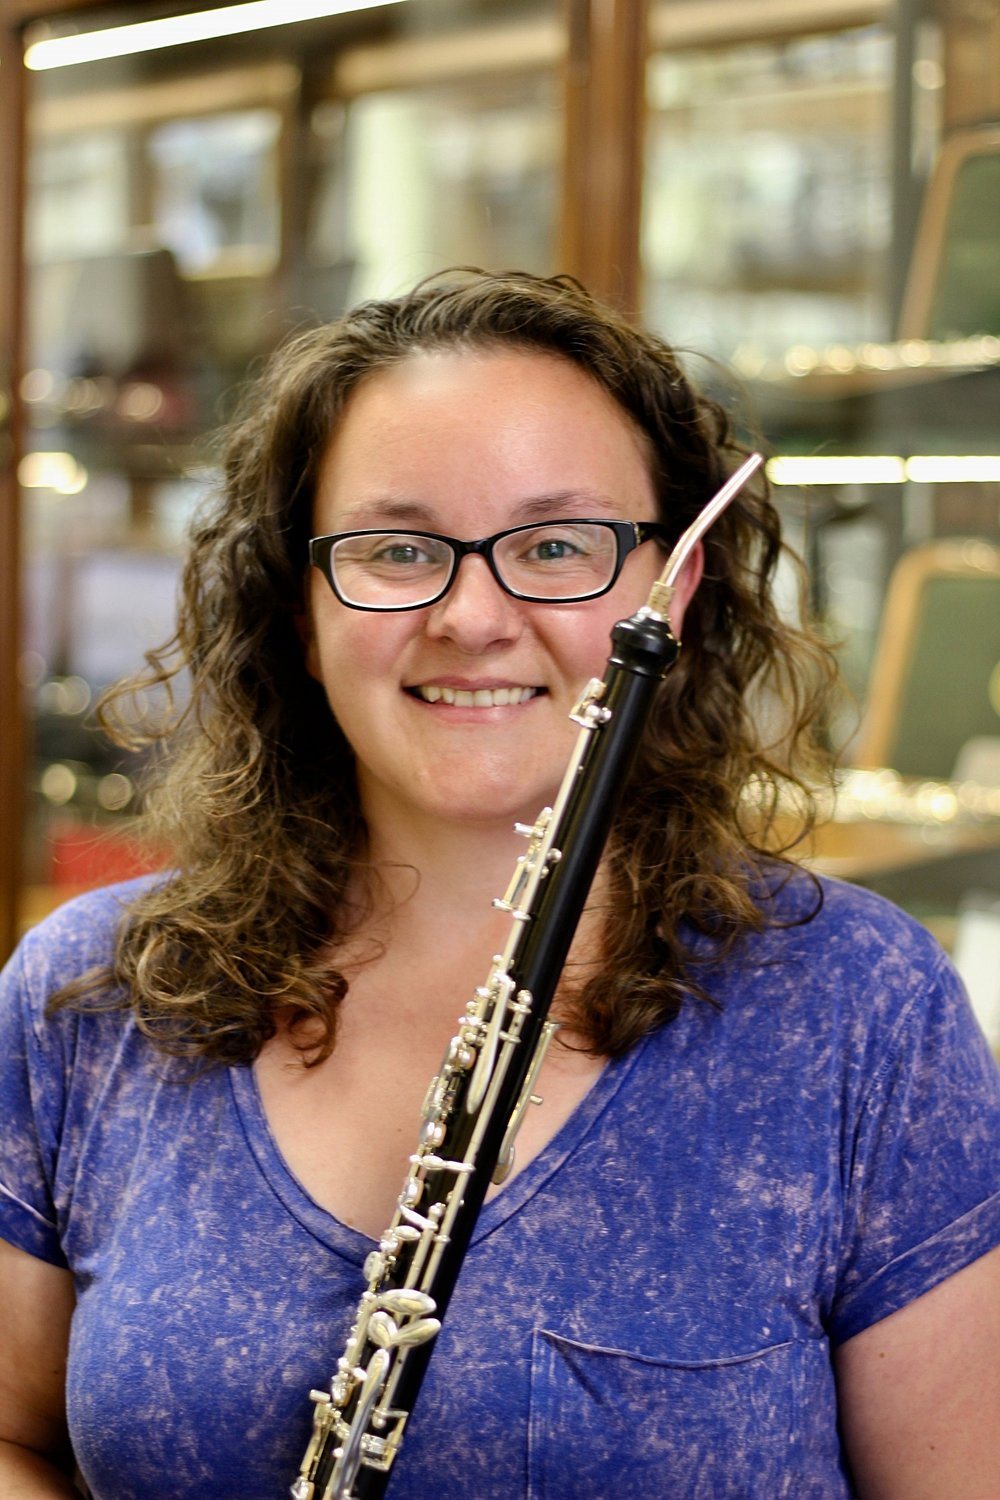 - 27 July, 2017 I am proud to introduce you all to my new cor anglais! I travelled to Howarth of London on Tuesday 25th July to choose my Marigaux cor anglais. Mandy and Ben were very helpful and patient while I tried lots of instruments and crooks (bocals!). I was also very lucky to have my brother with me to help with the decision making -thanks Ruairi!The purchase of this fabulous instrument would not have been possible without Music Network, The Arts Council of Ireland and the Department of Arts, Heritage, Regional, Rural and Gaeltacht Affairs. I am so grateful for their support! Now... who wants to play some chamber music?!